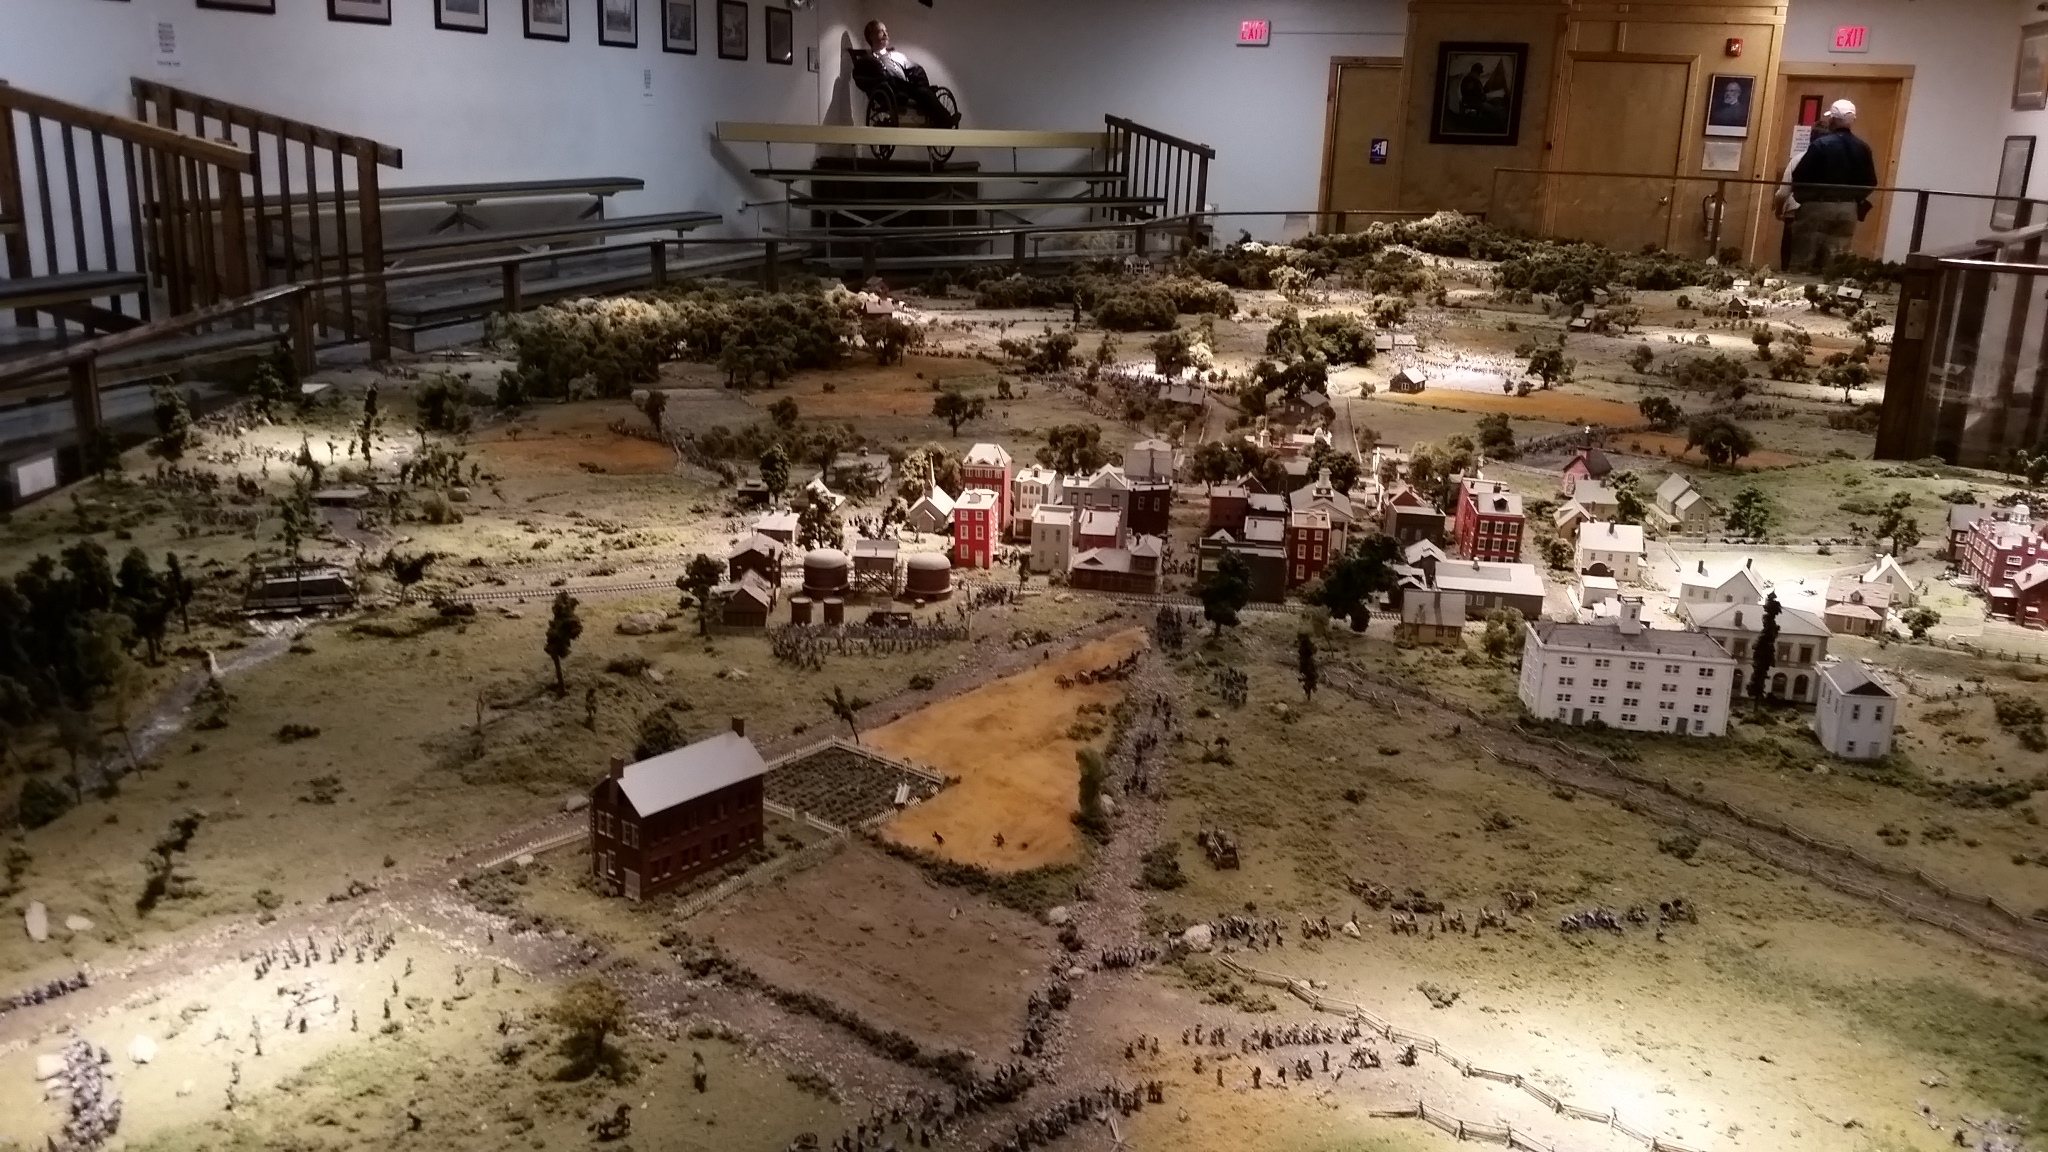 Diorama of the Gettysburg battlefields